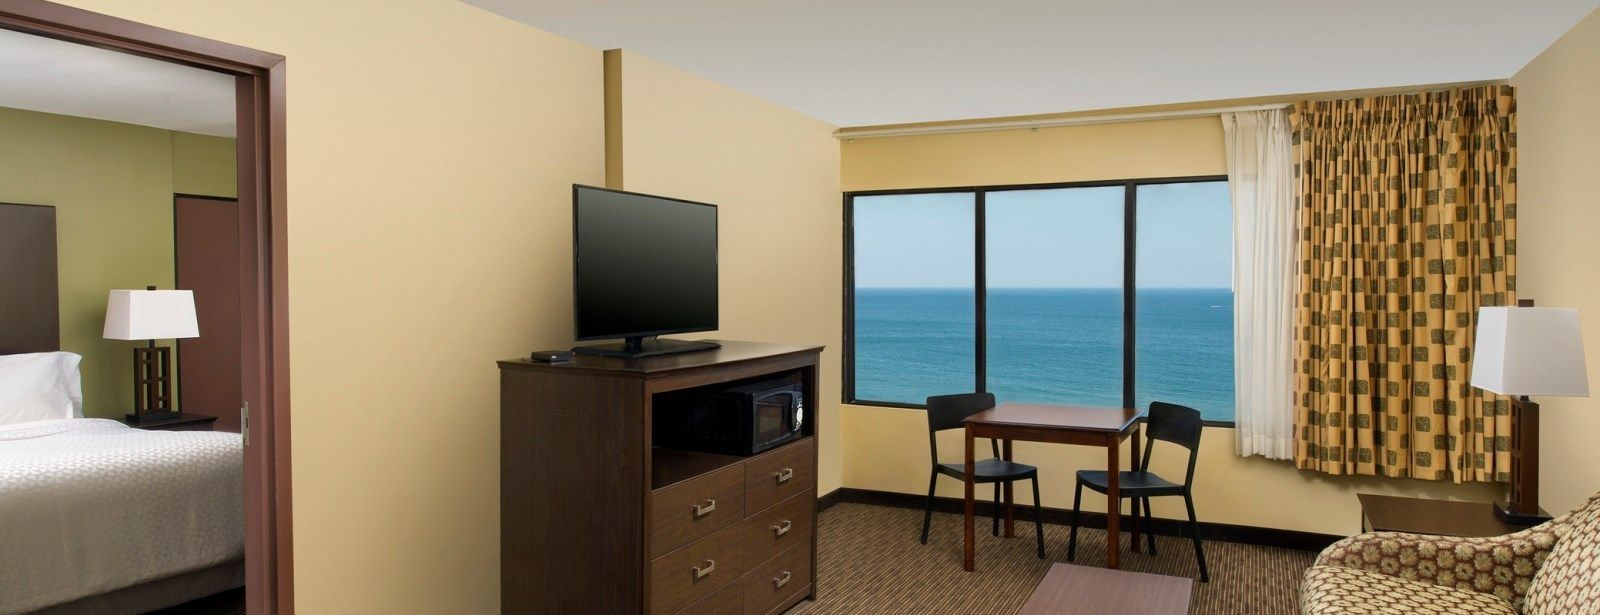 Virginia Beach Accommodations - King Suite